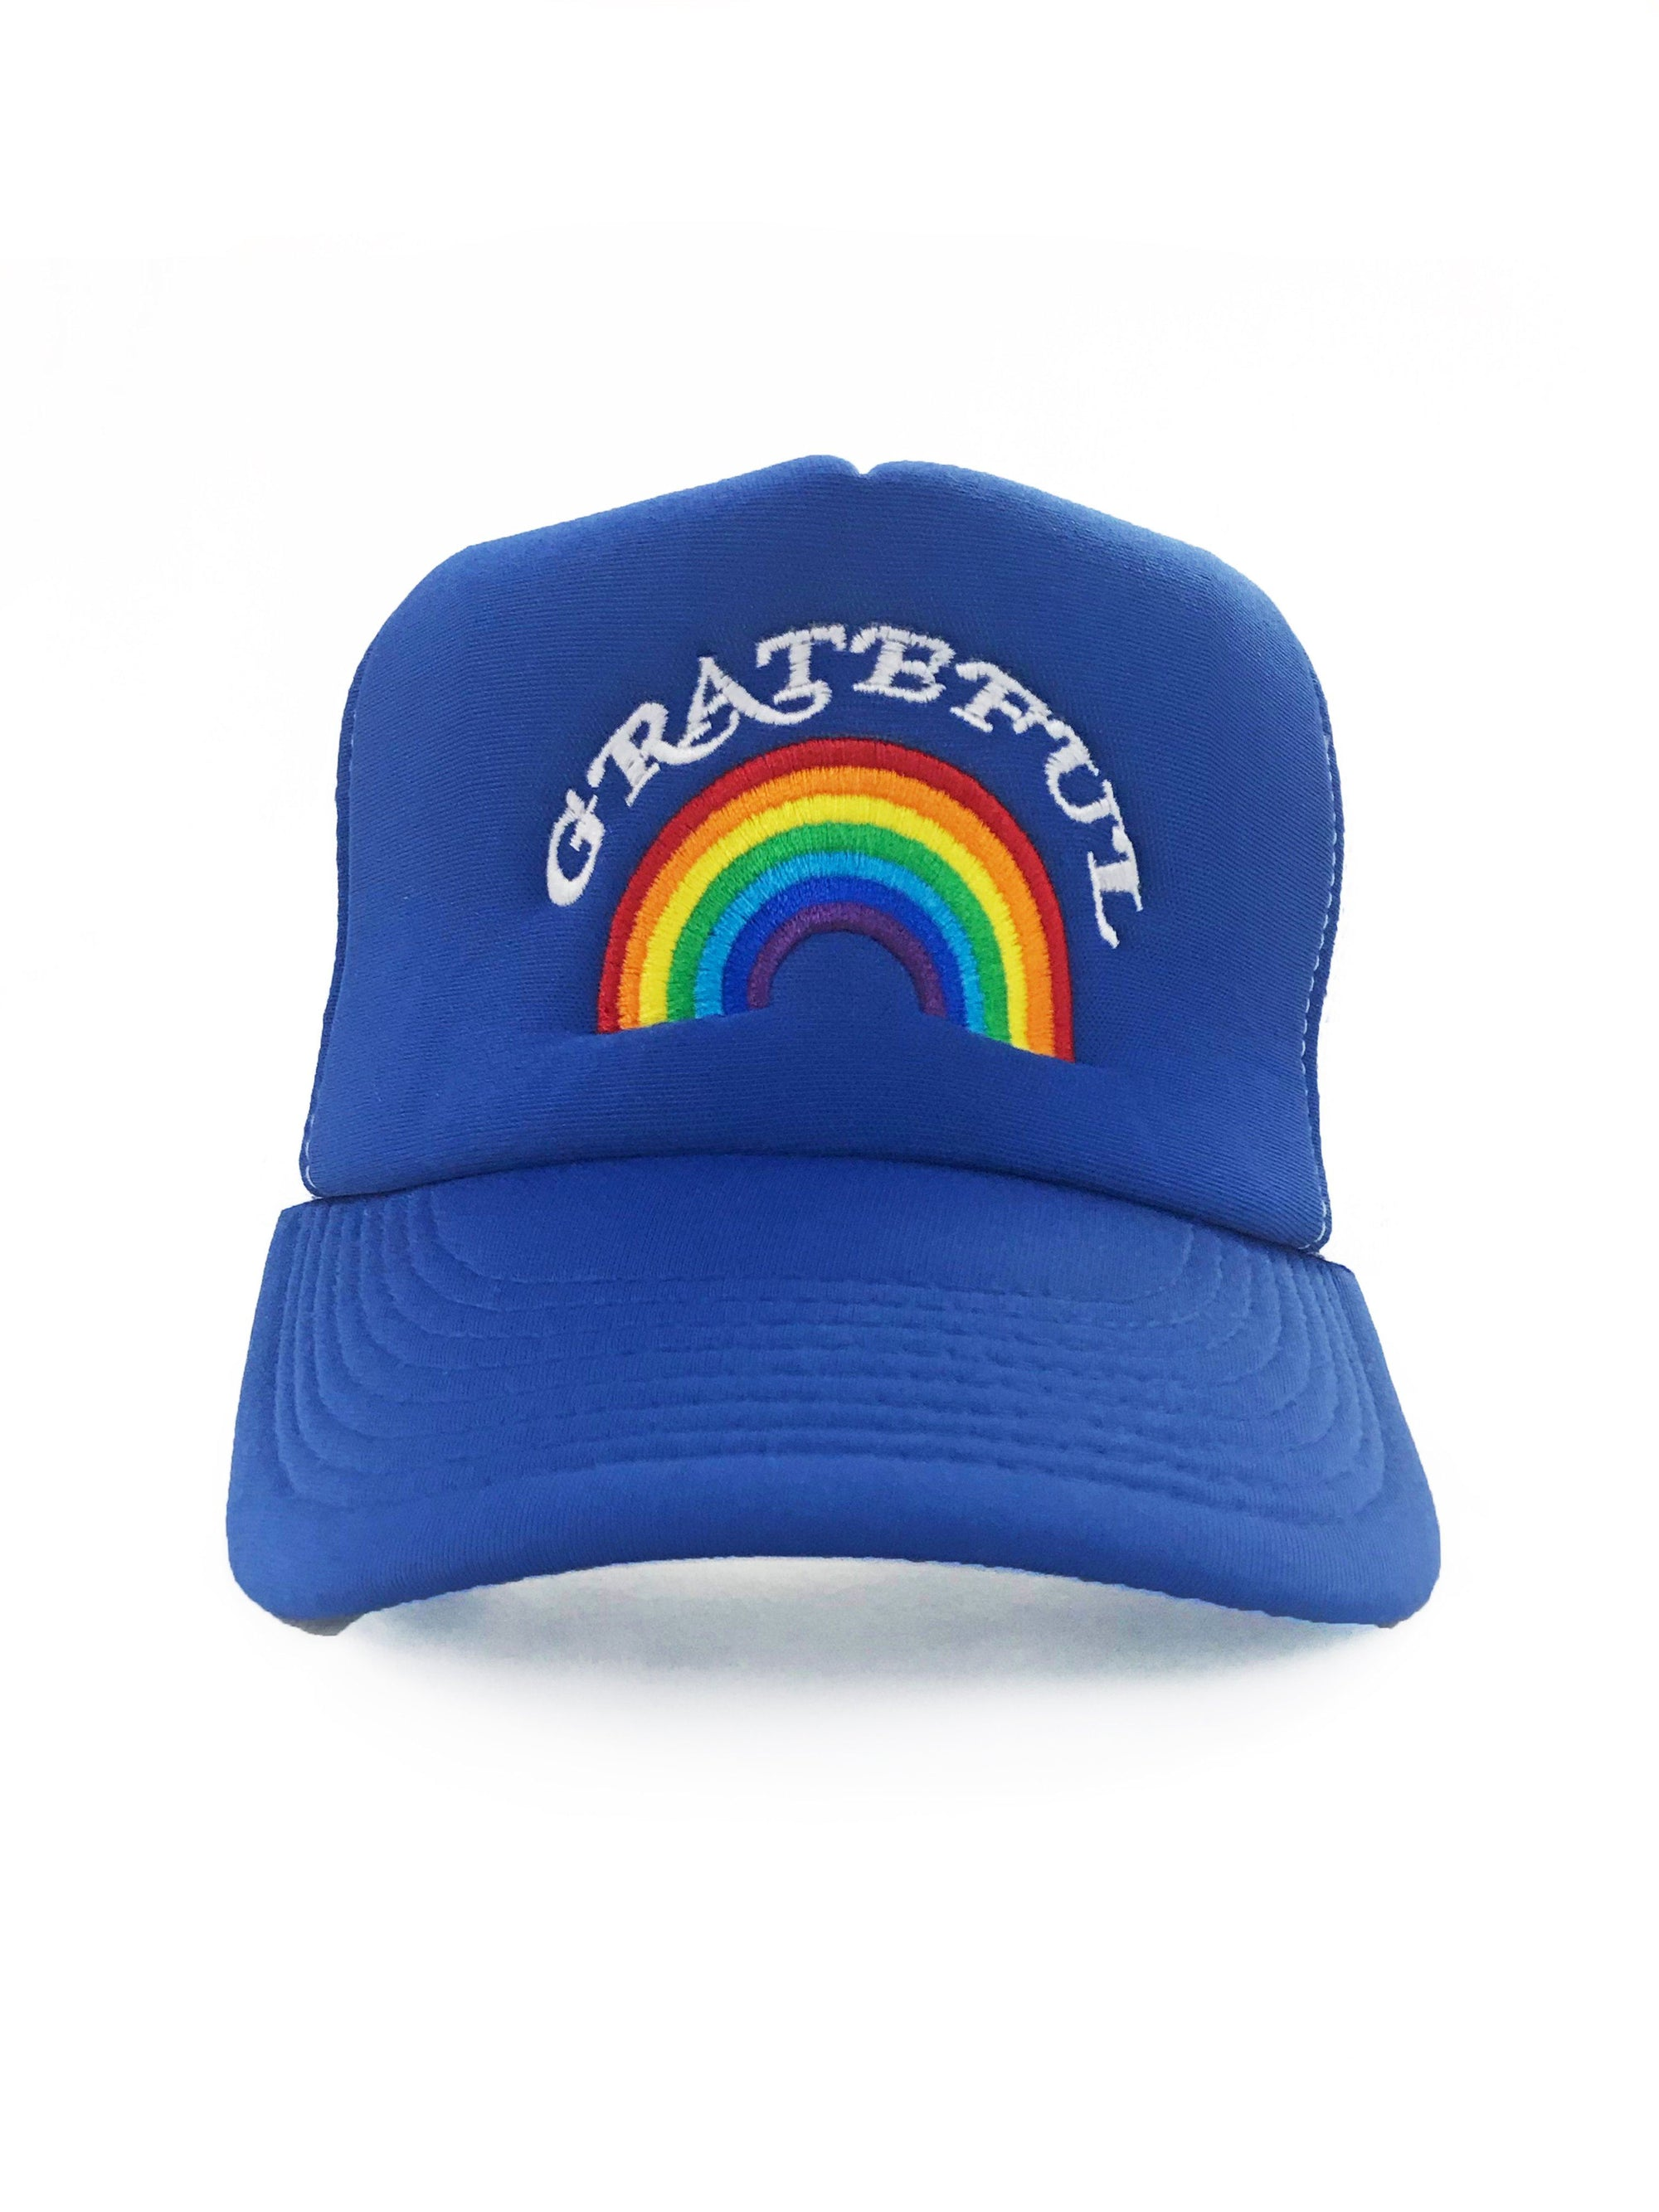 Grateful Rainbow Trucker Hat Hat Bun Maternity Nursing Apparel